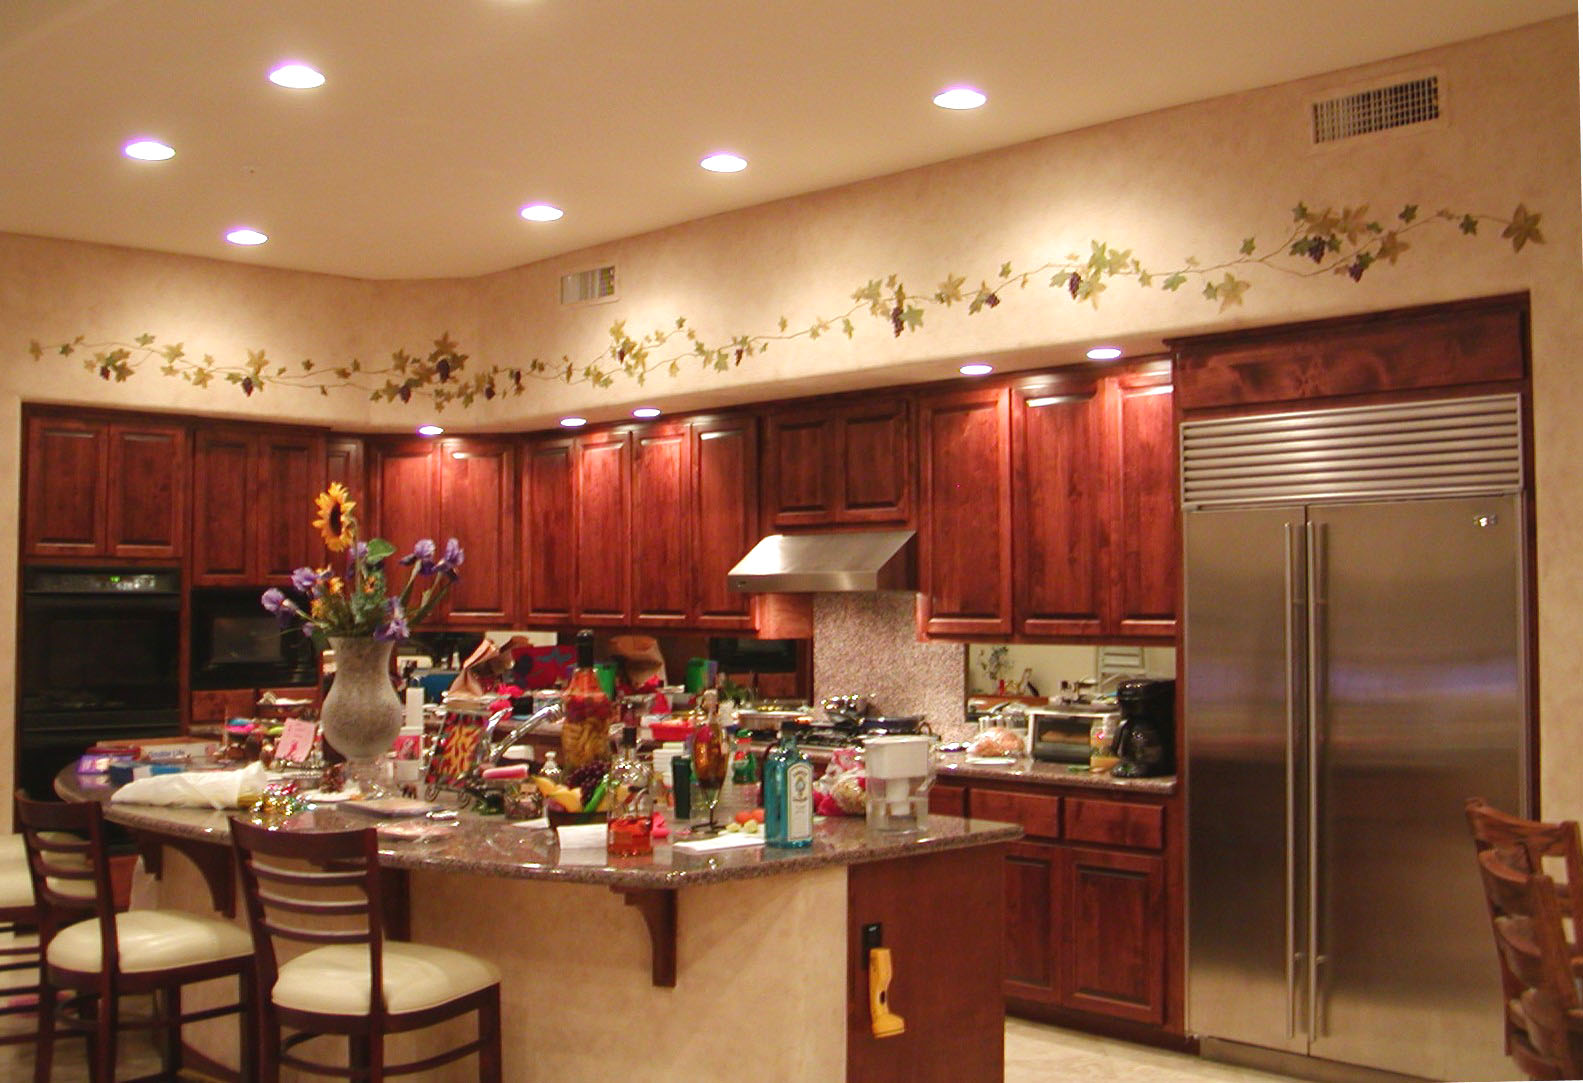 How to improve your kitchen without remodeling for Painting kitchen ideas walls